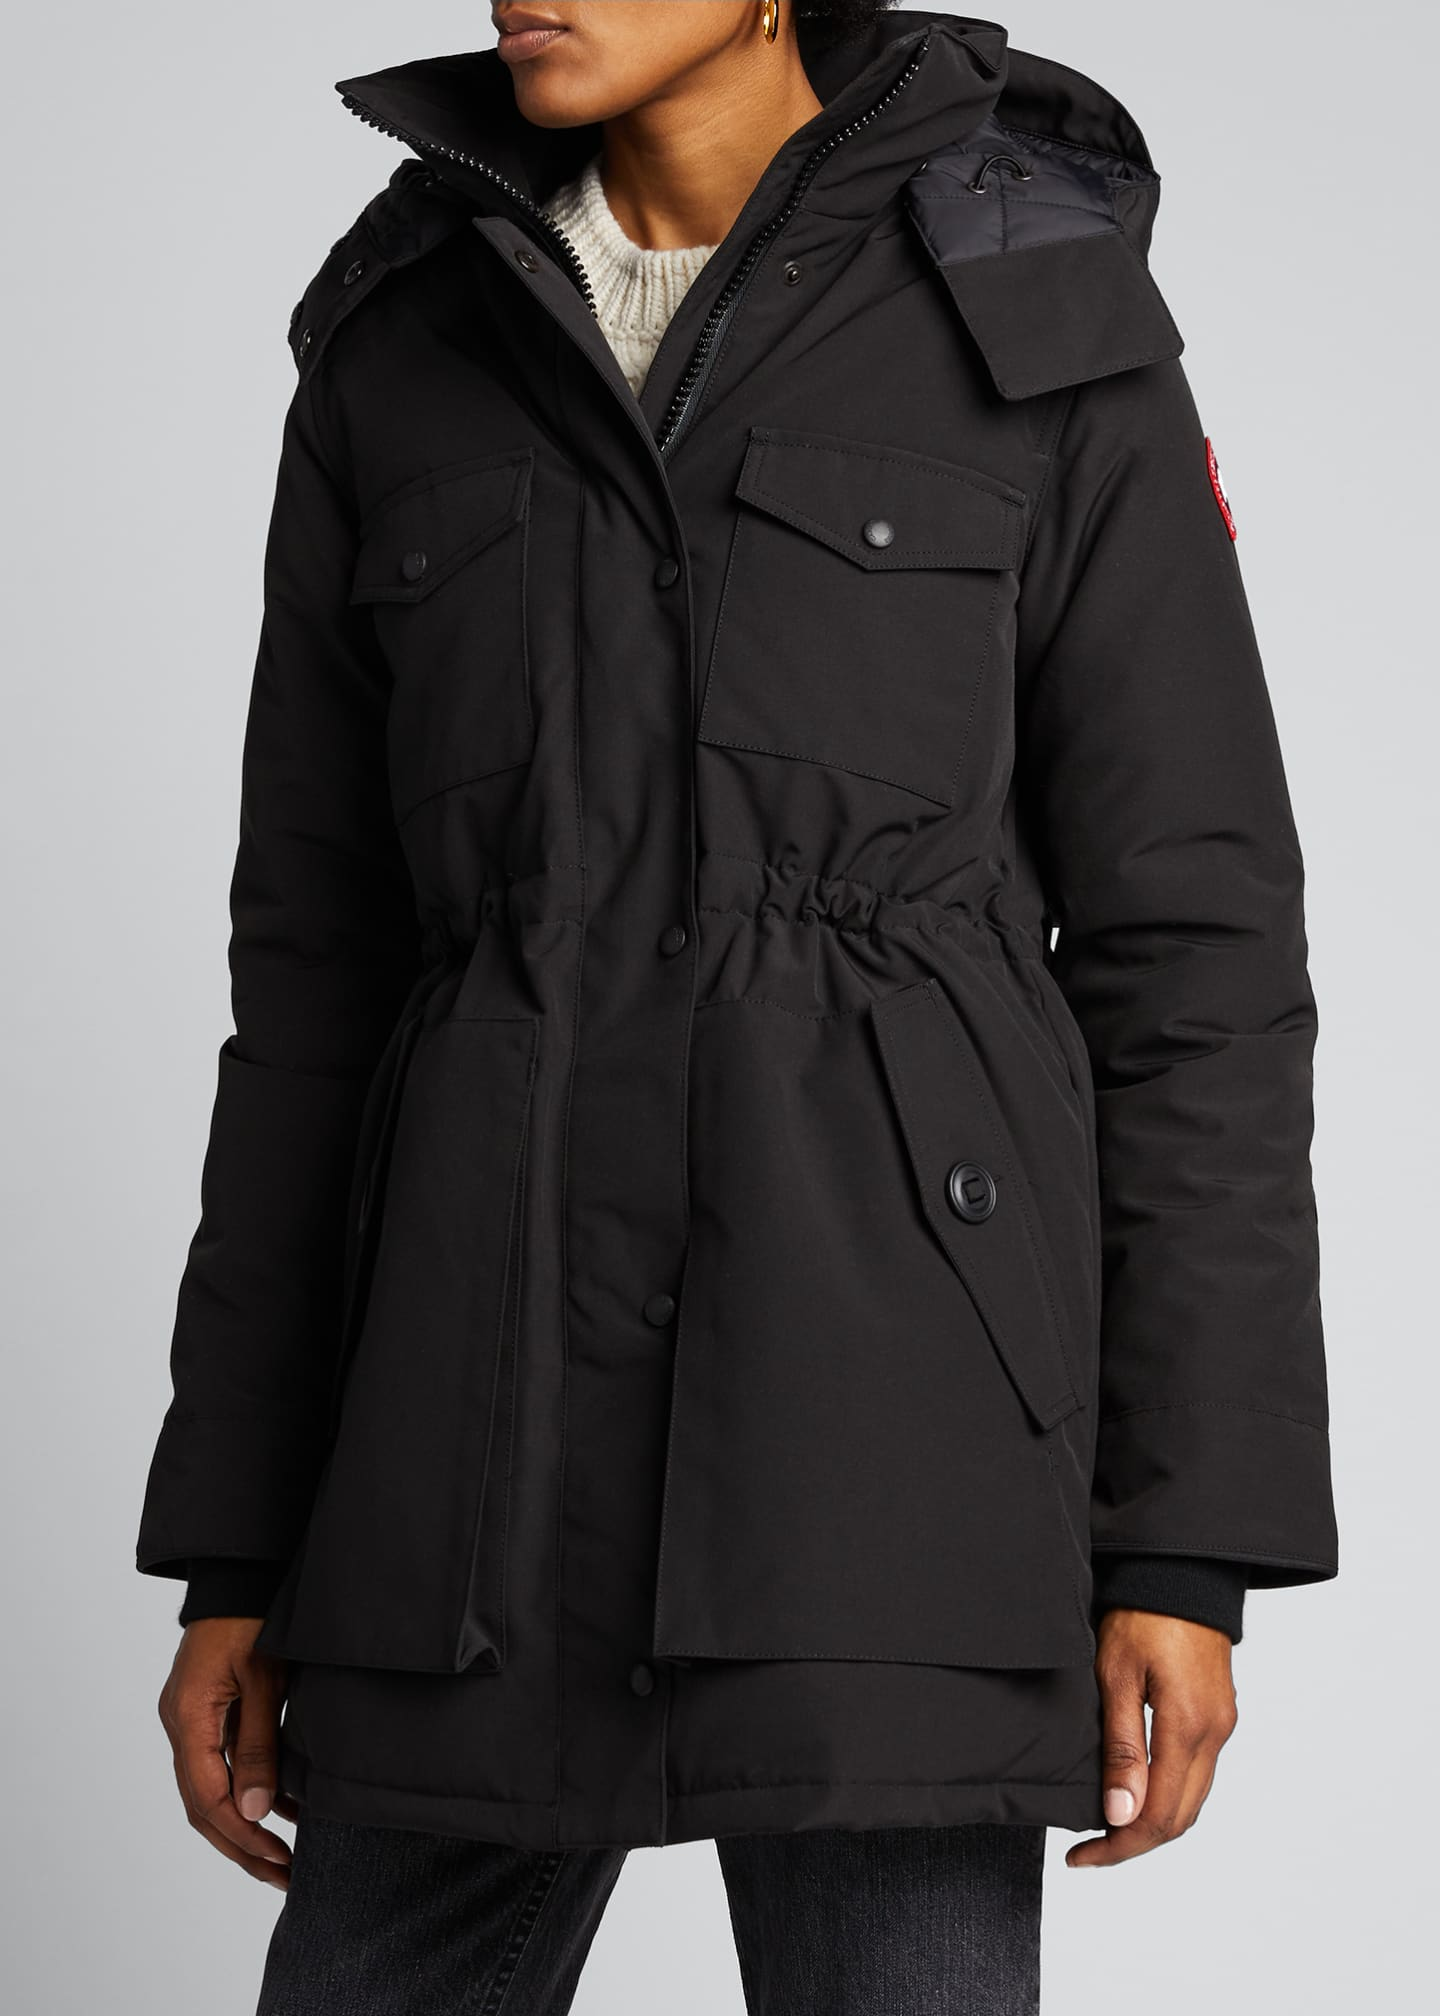 Image 3 of 5: Gabriola Hooded Parka Coat w/ Reflective Back